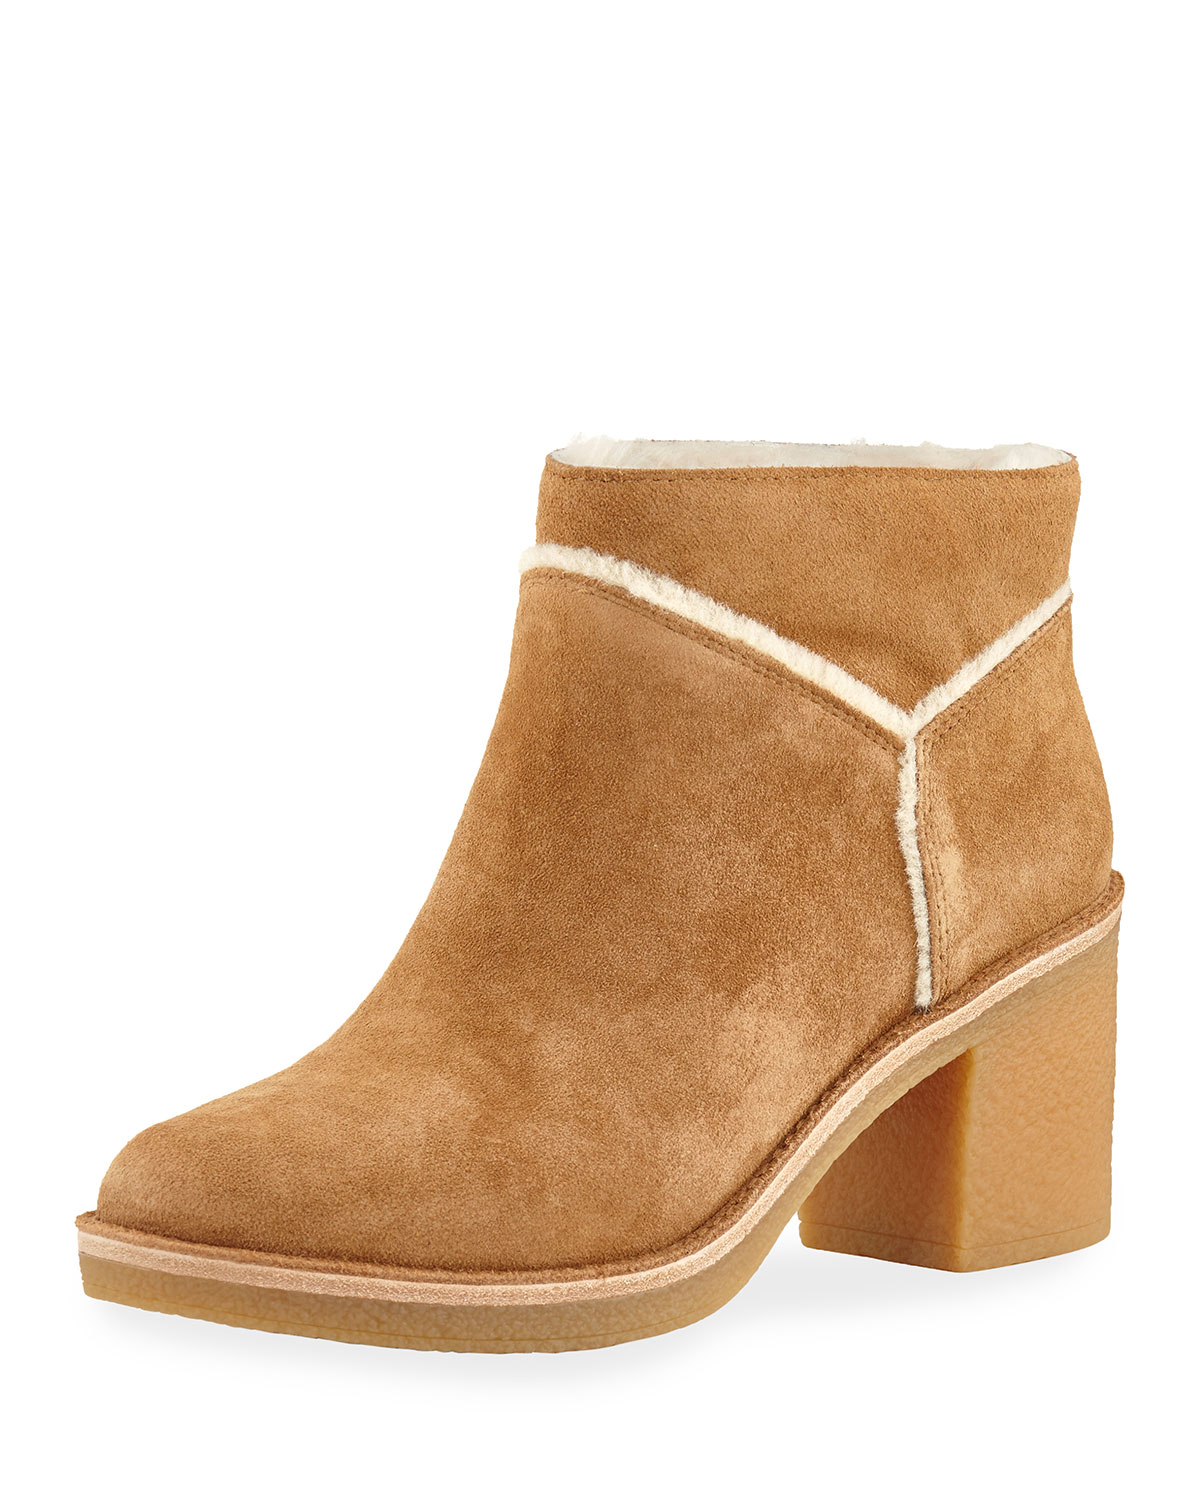 418ff6195ad Kasen Soft Suede Ankle Bootie